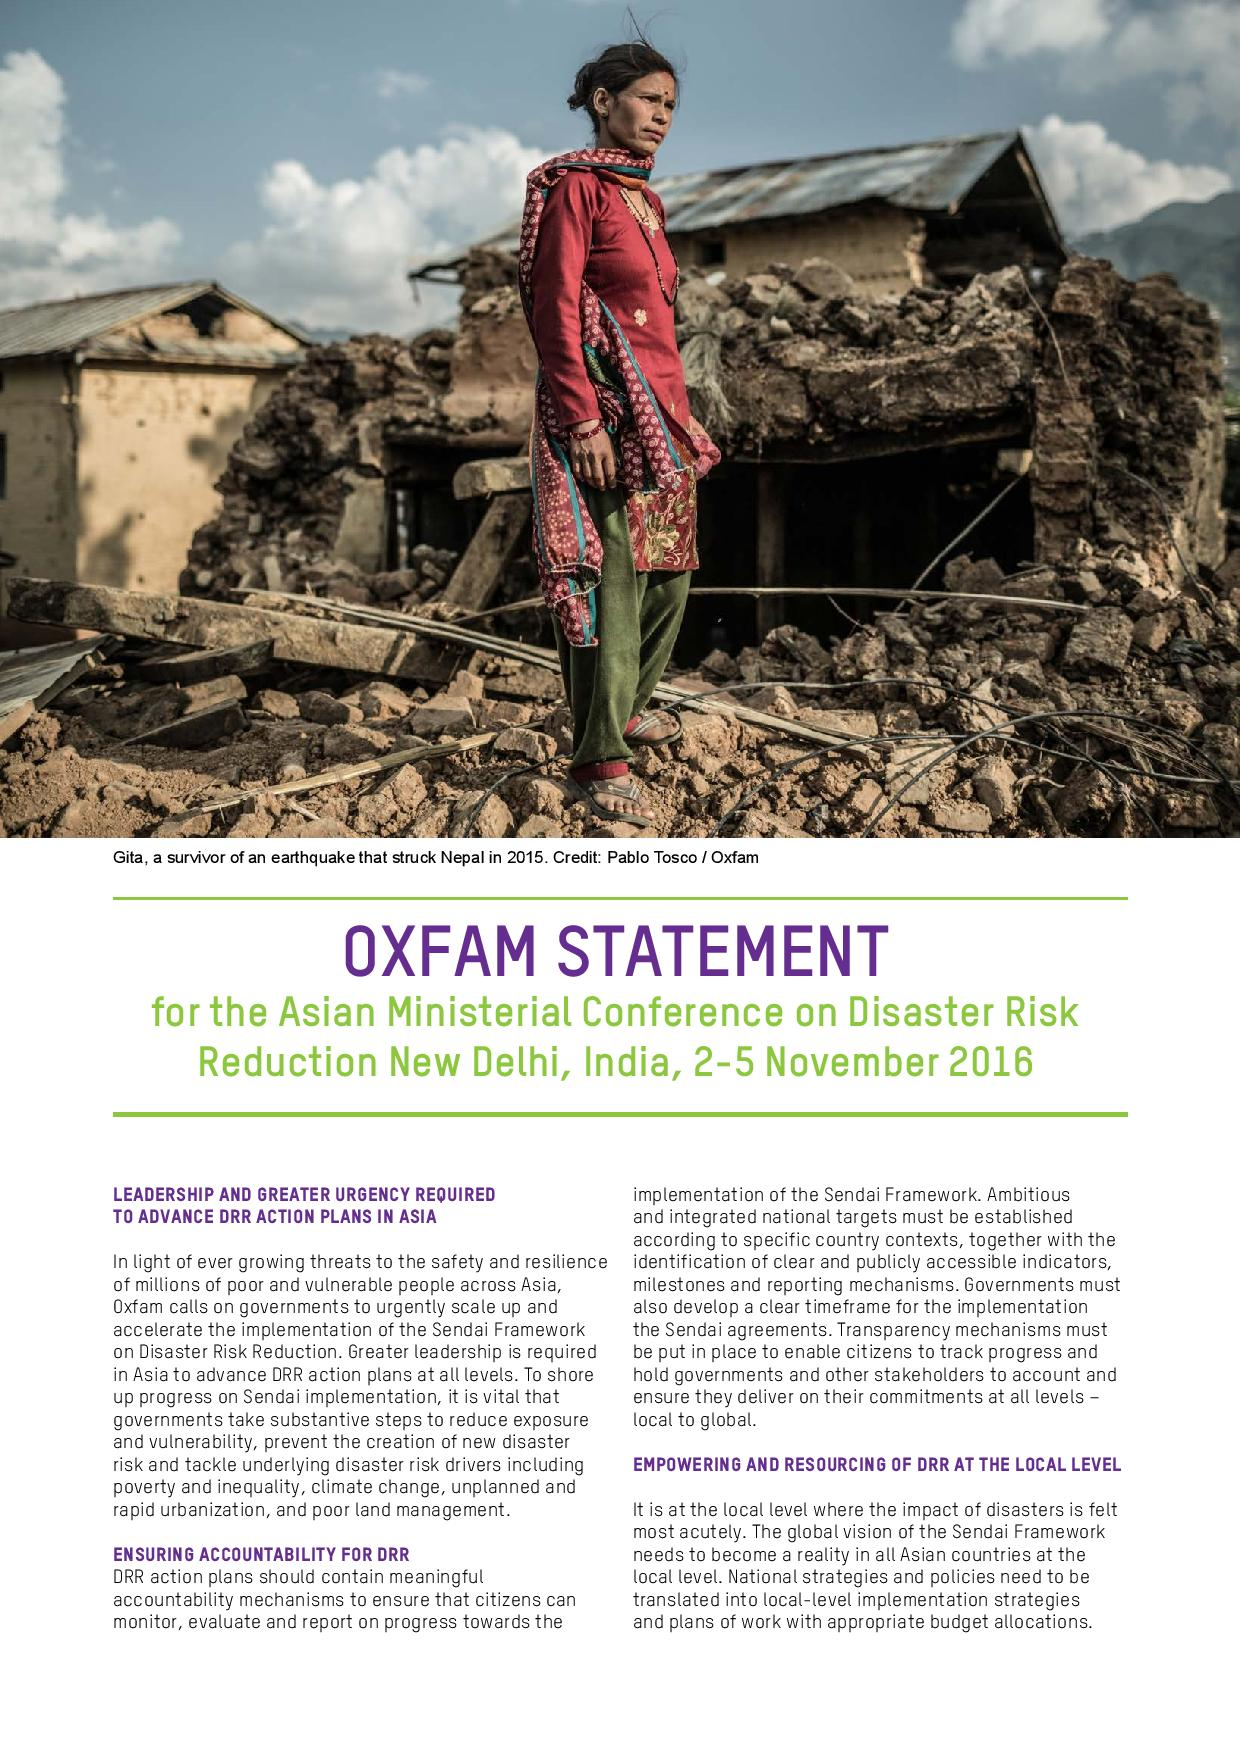 Oxfam statement Asian Ministerial Conference on Disaster Risk Reduction